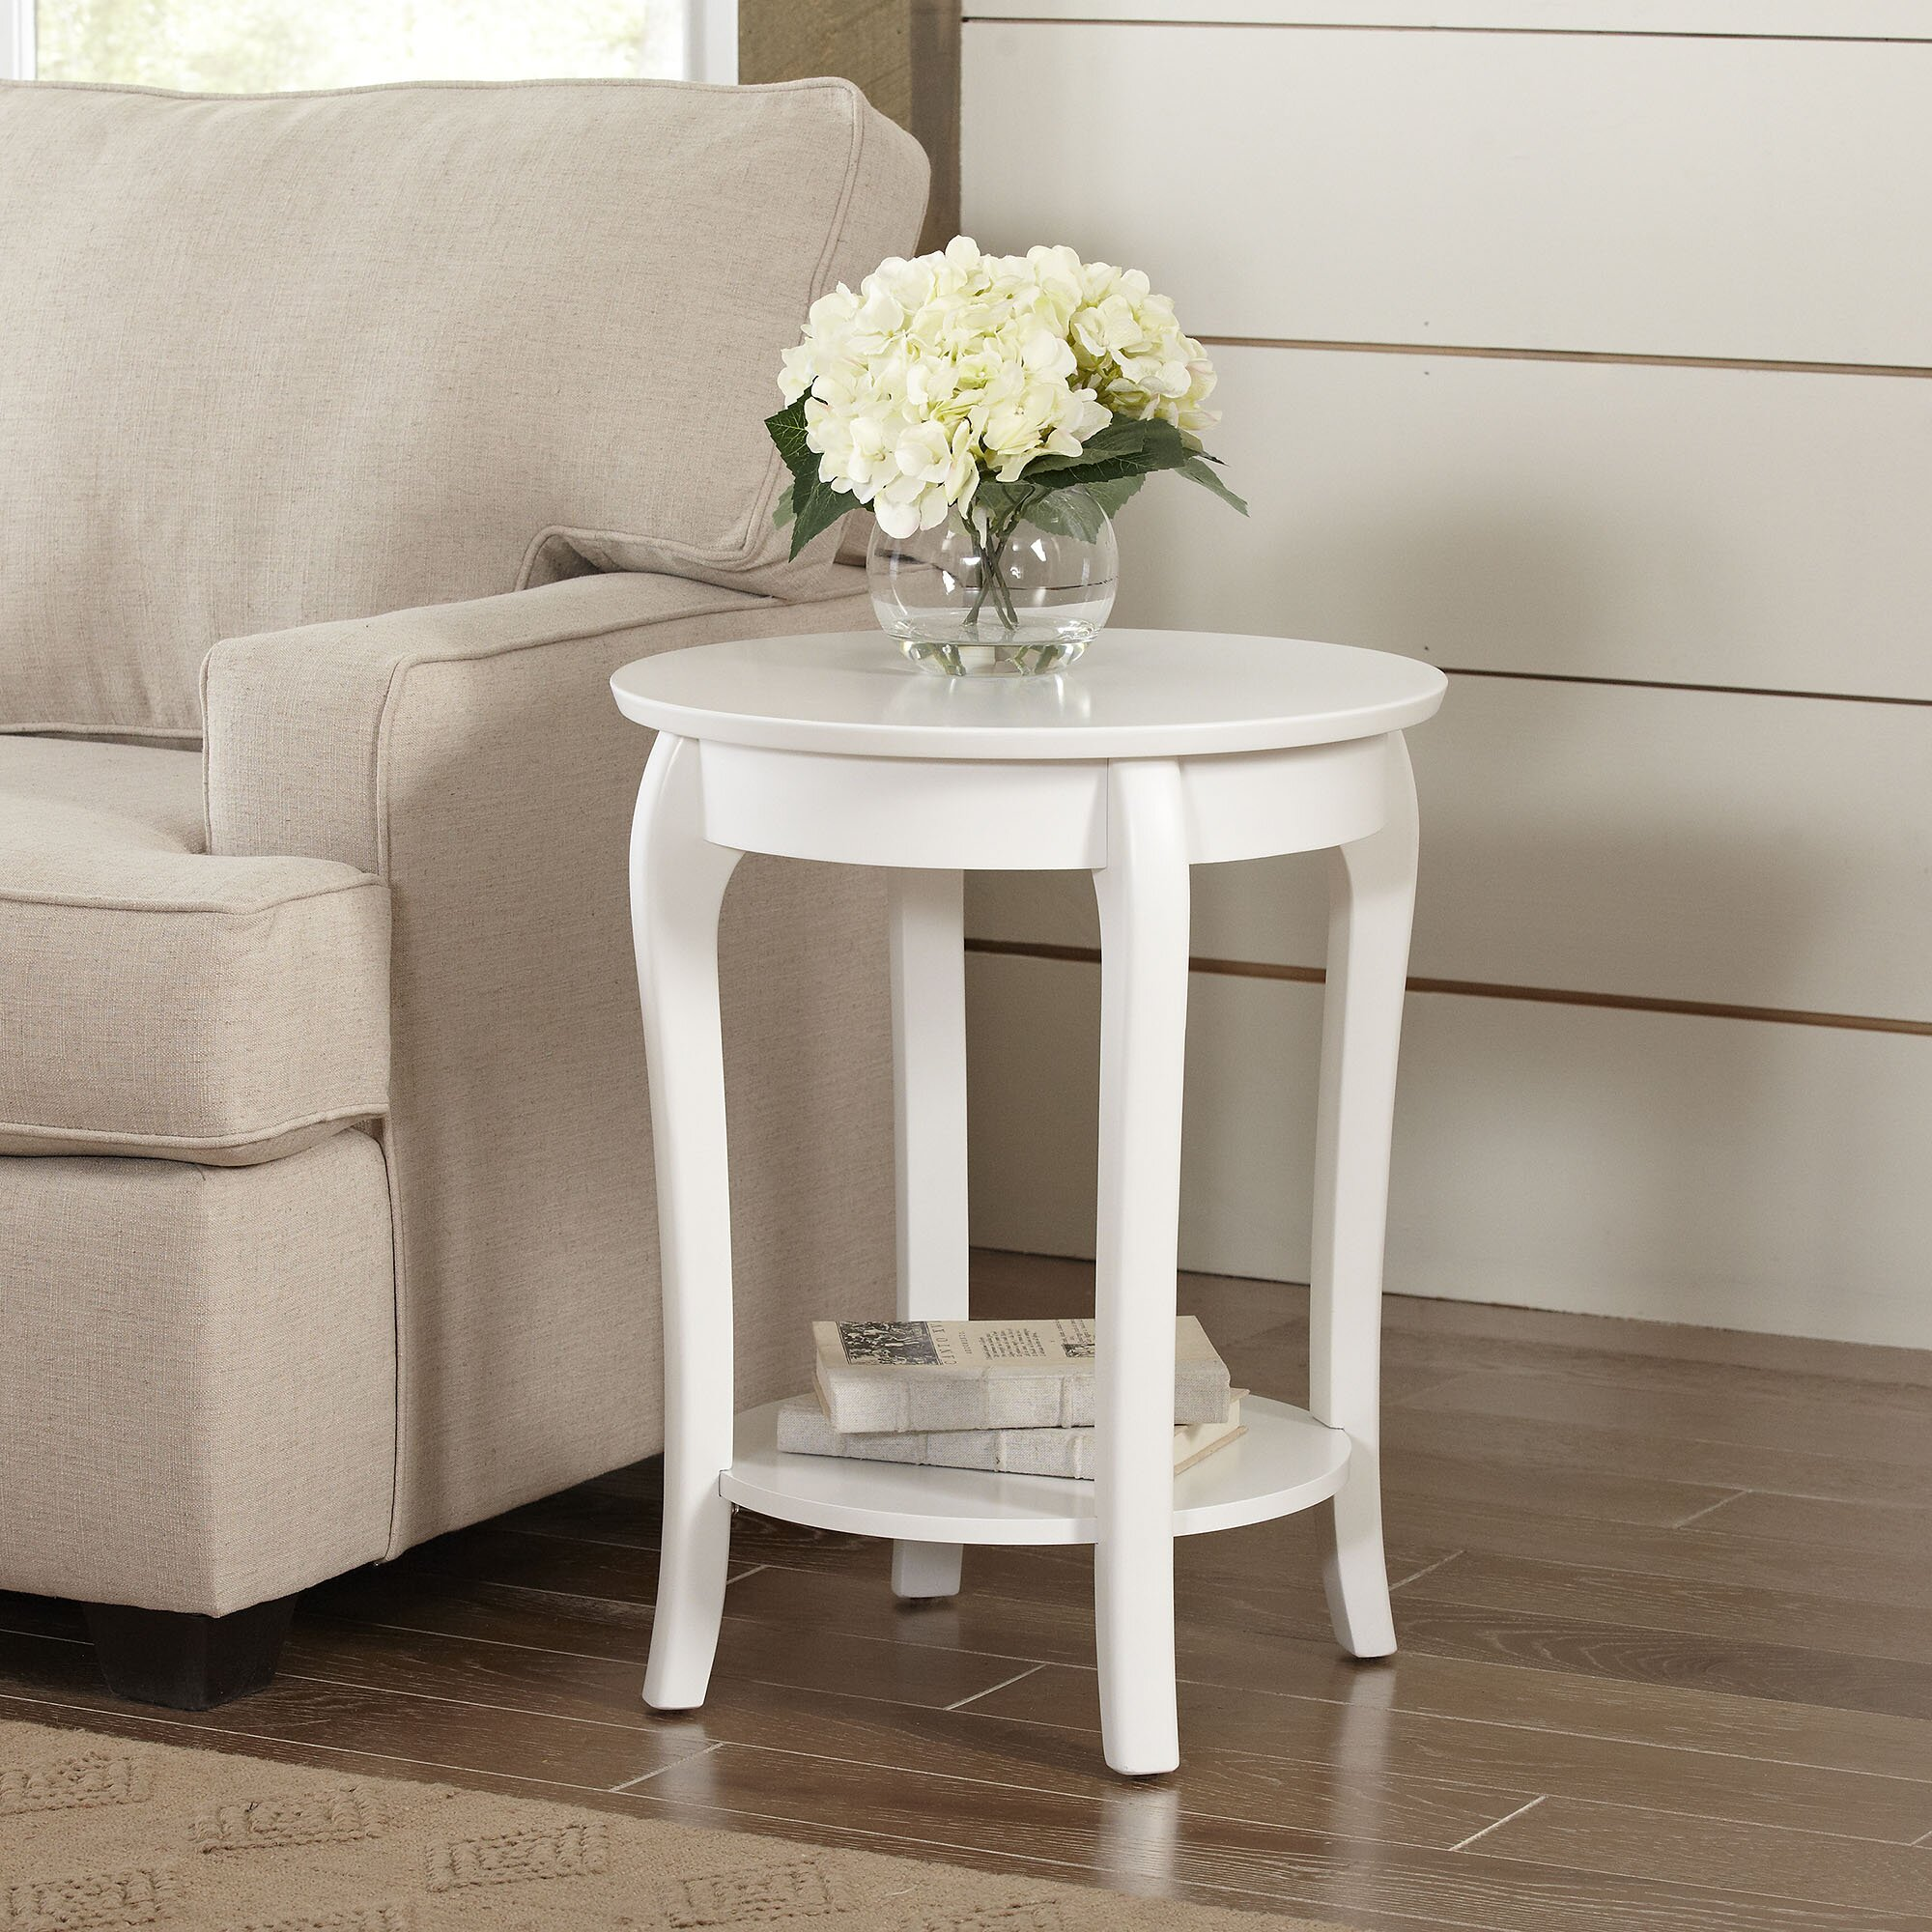 Round side tables - Alberts Round Side Table Reviews Birch Lane